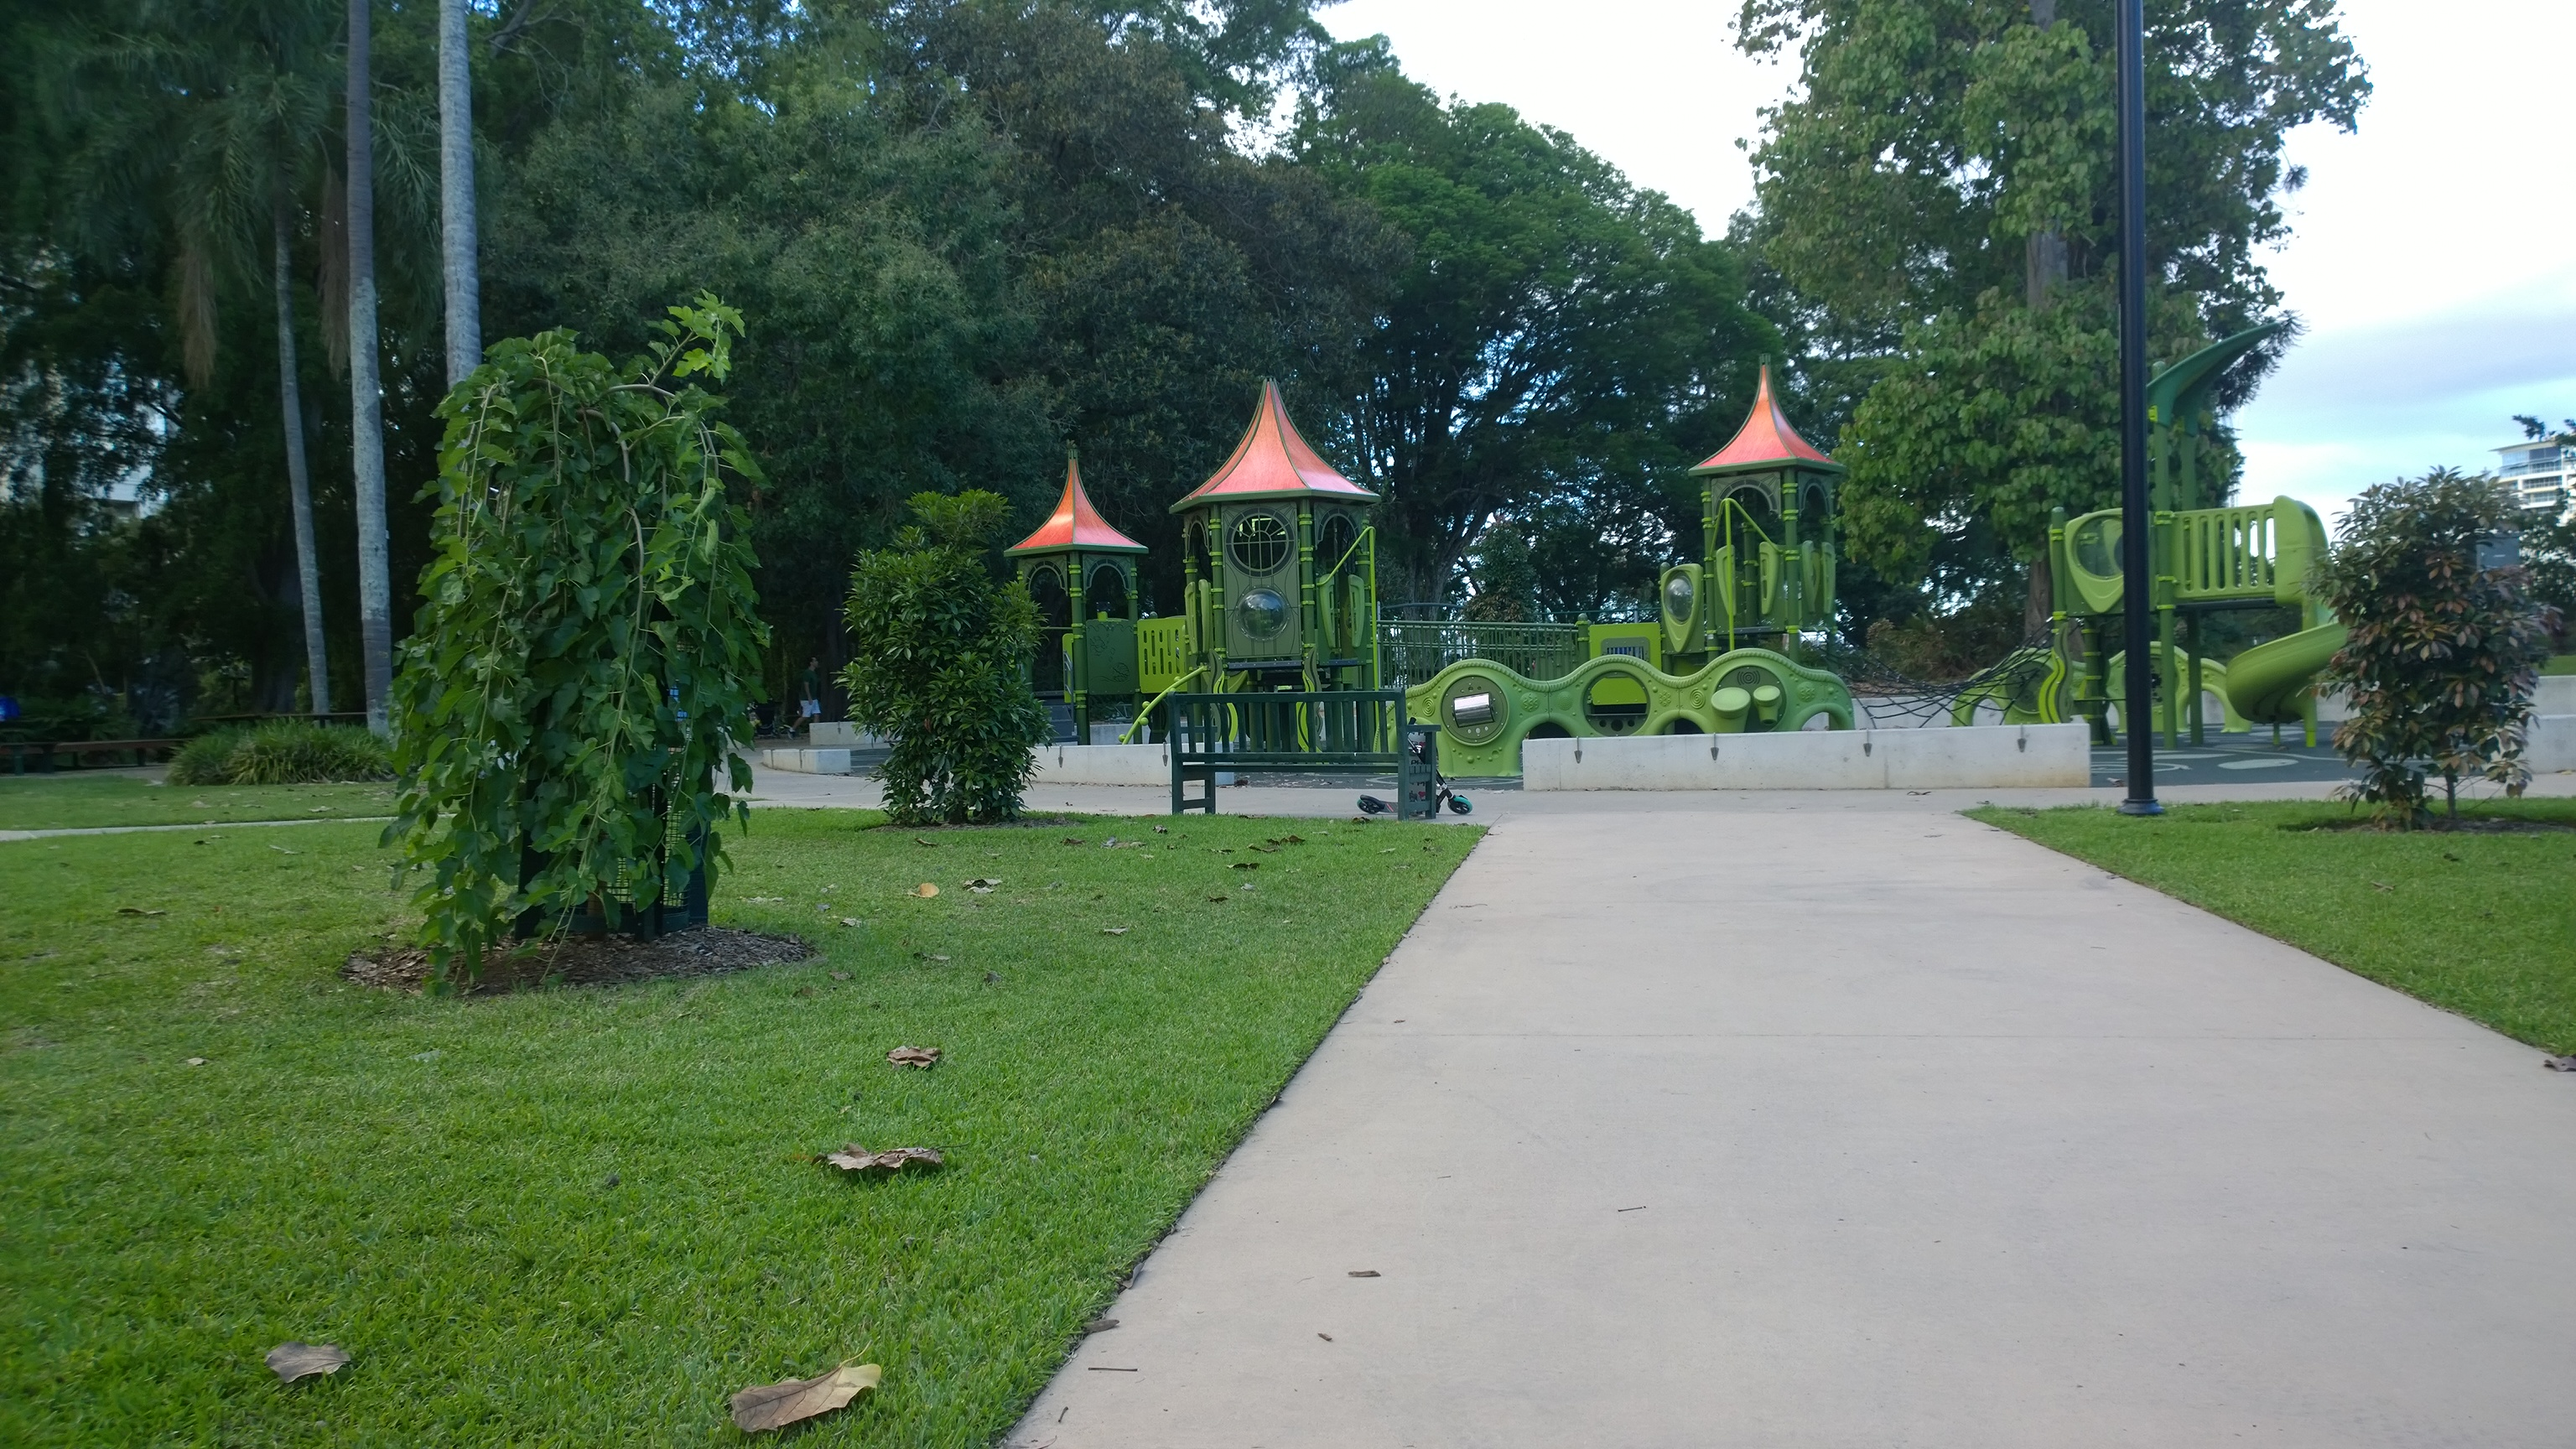 scooter path at park